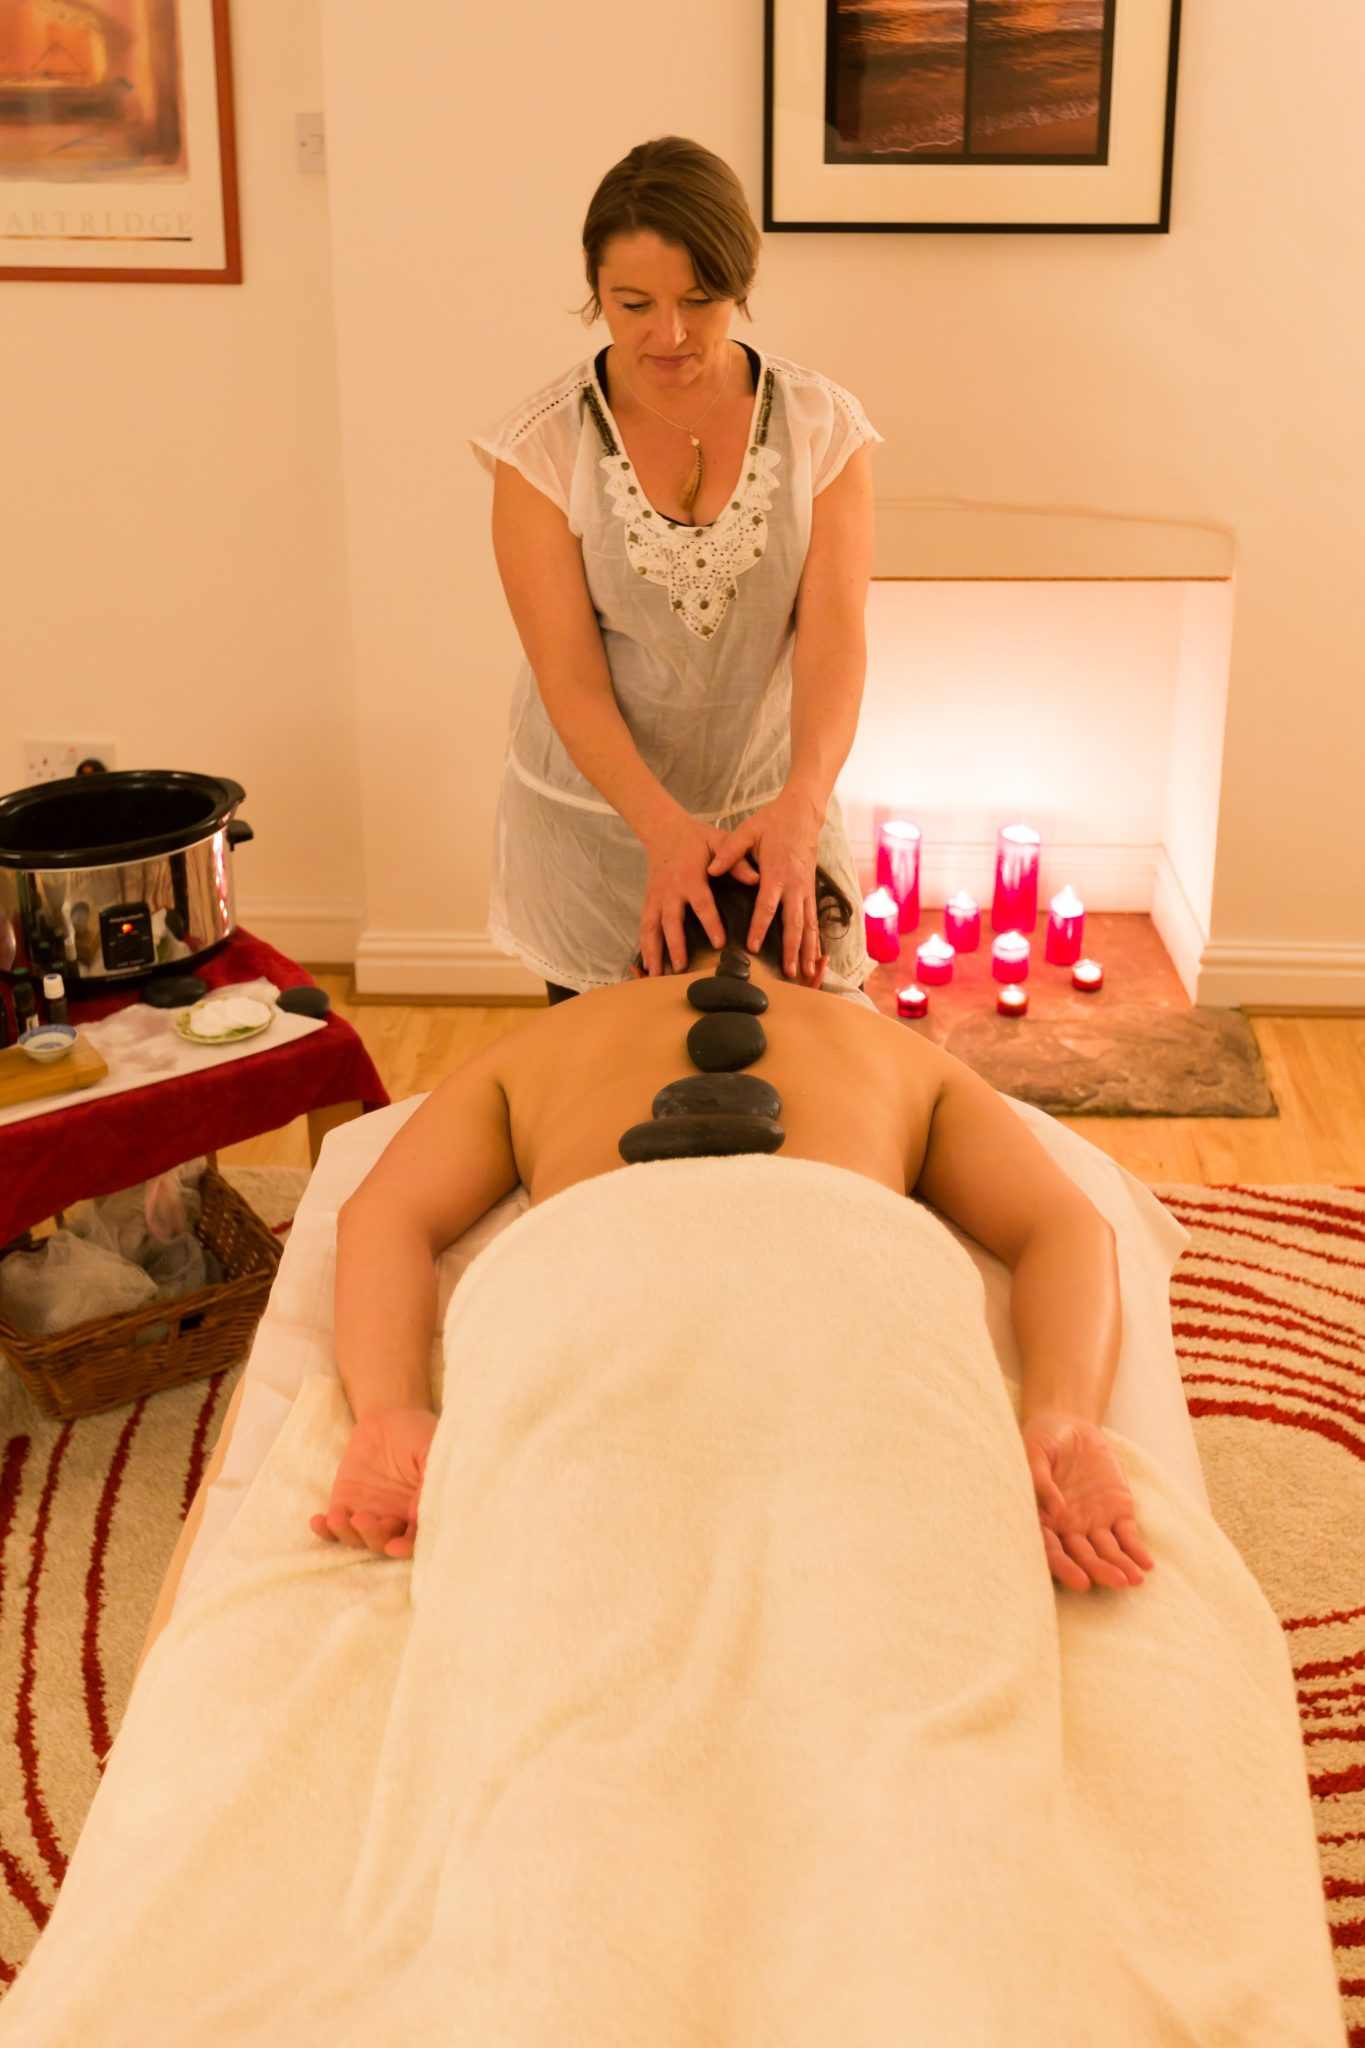 Rowan - Hot Stone Massage at Alma Vale Centre